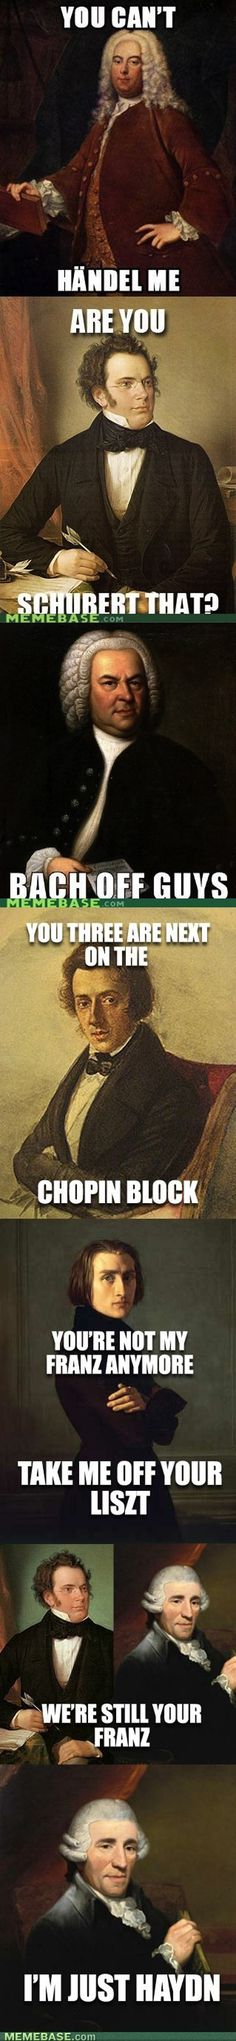 composer memes you can't handel me - Alaska Commons